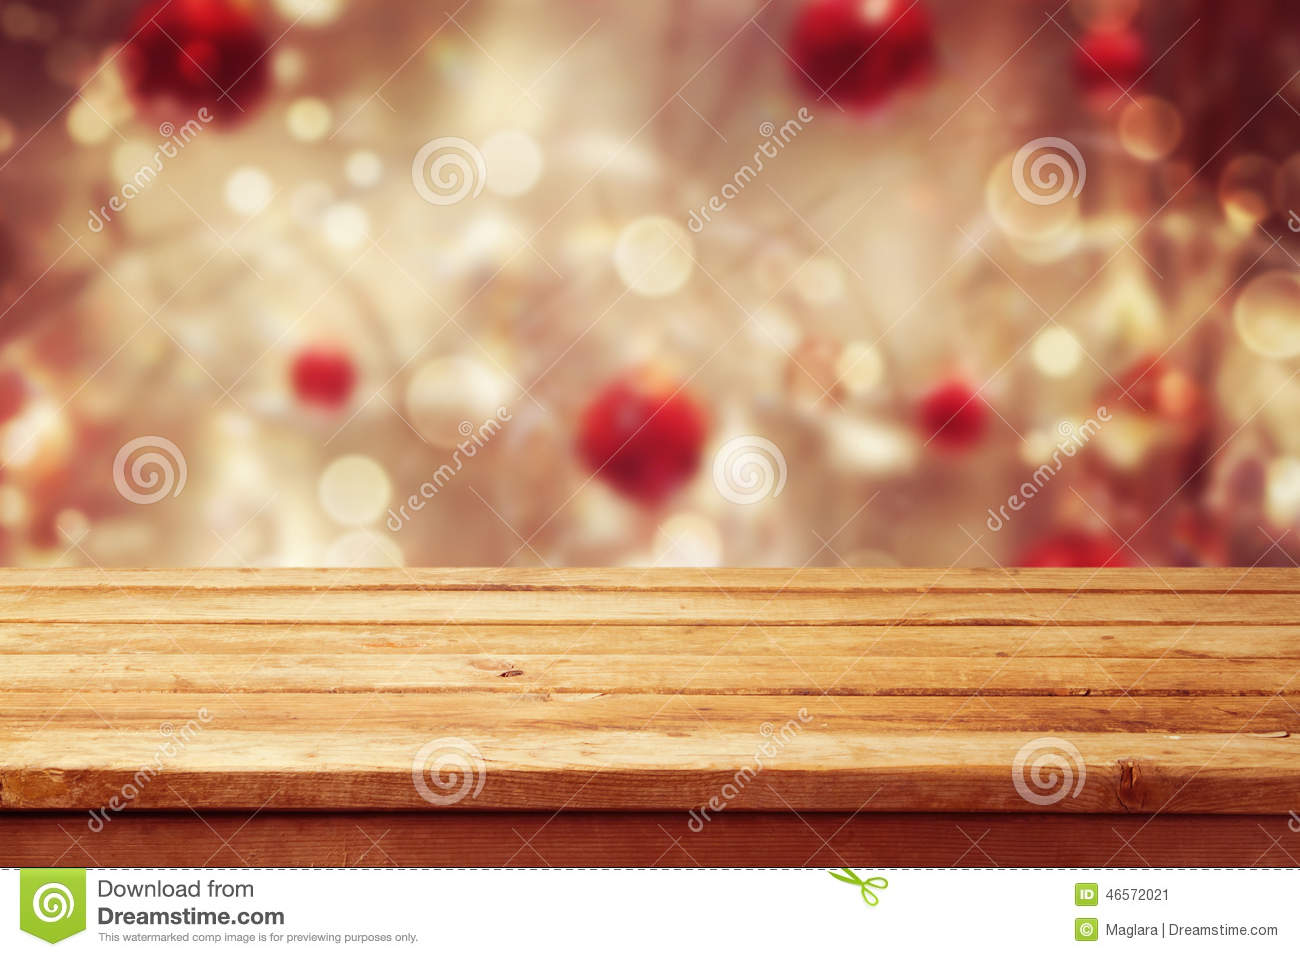 Christmas holiday background with empty wooden deck table over winter bokeh. Ready for product montage